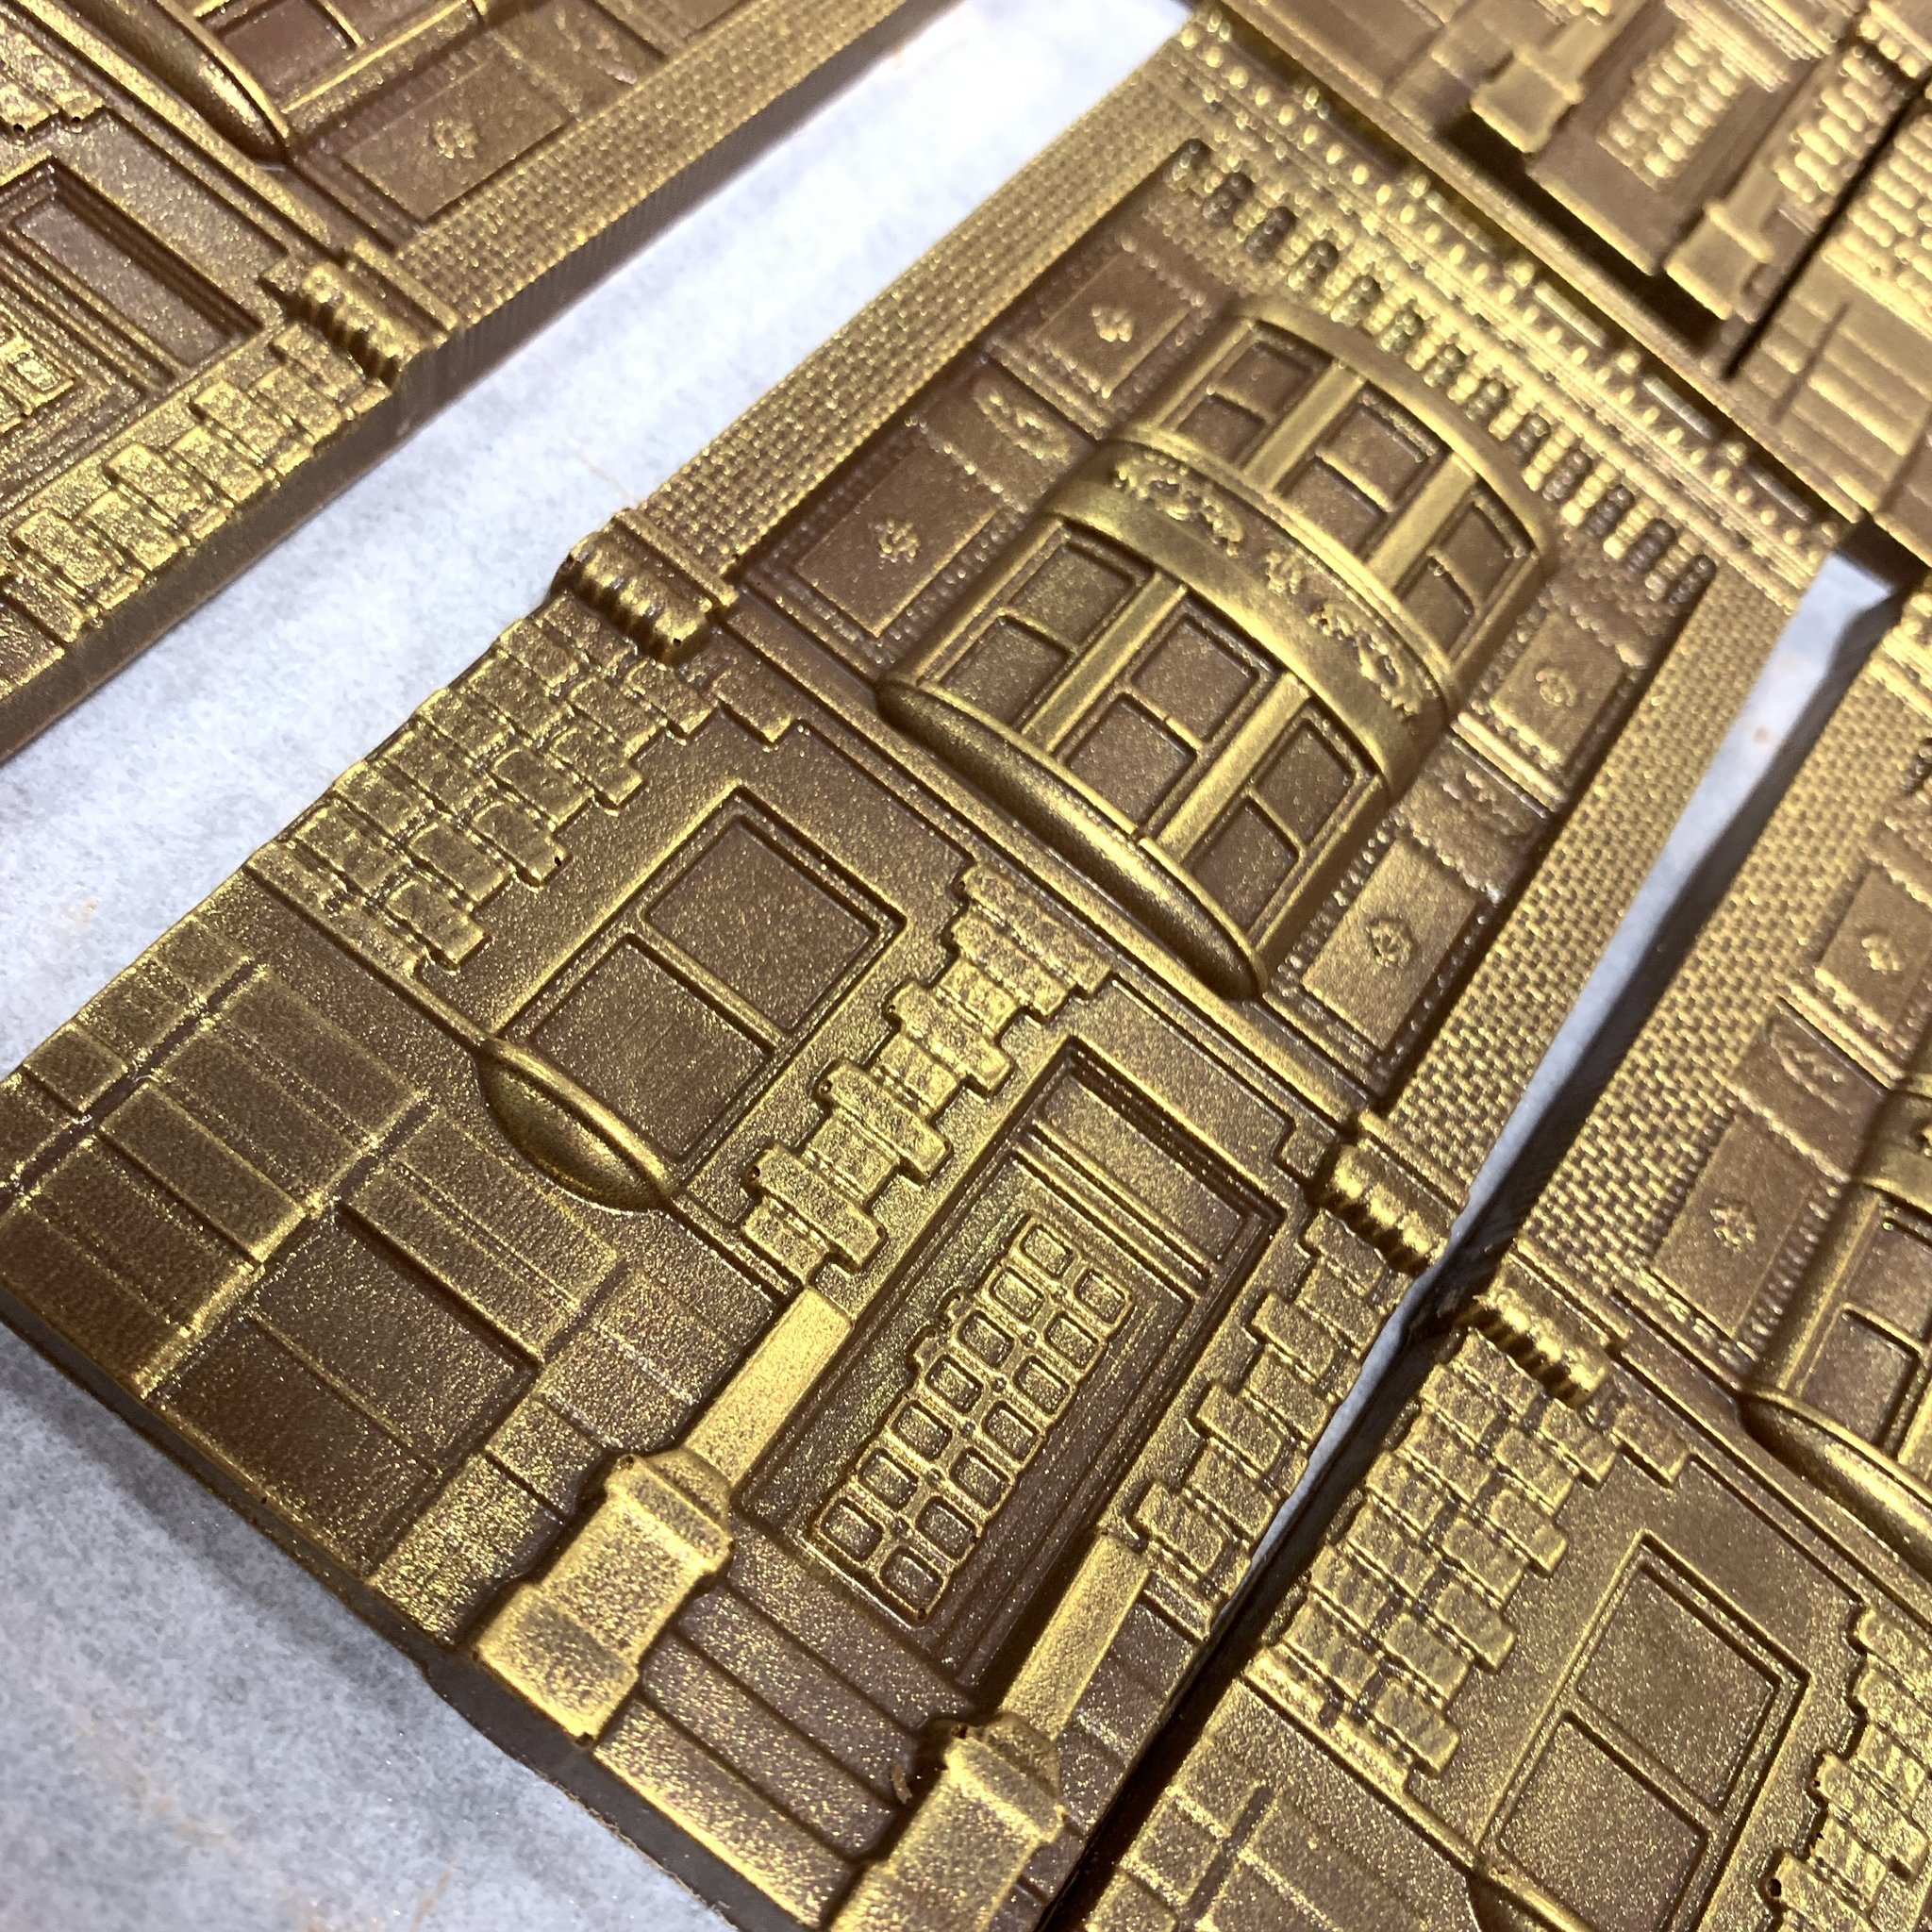 gold dusted milk chocolate shaped like houses in harlem